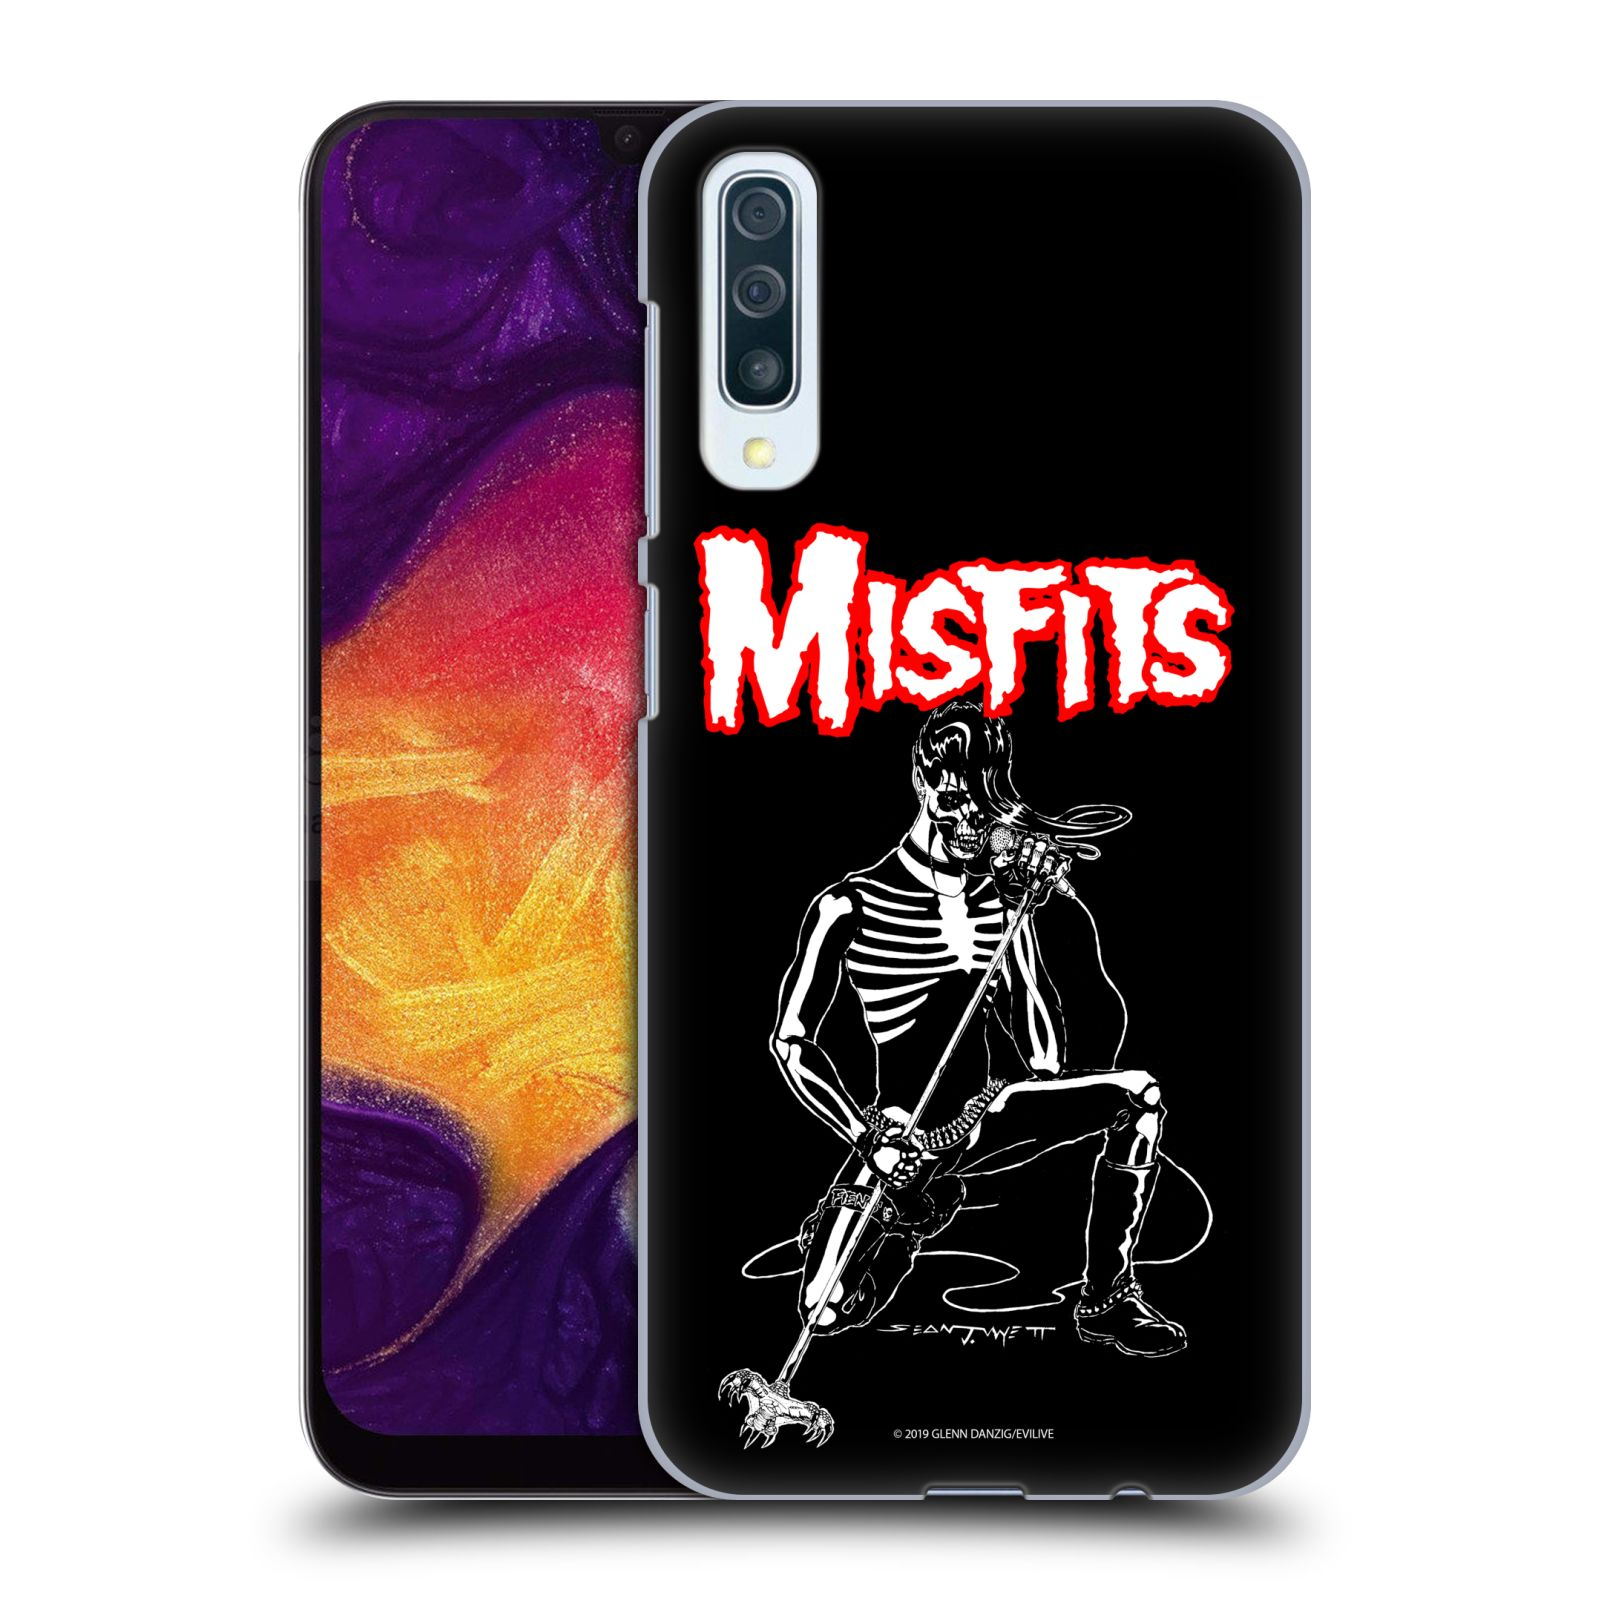 Official Misfits Band Art Legacy Of Brutality Case for Samsung Galaxy A50/A30s (2019)